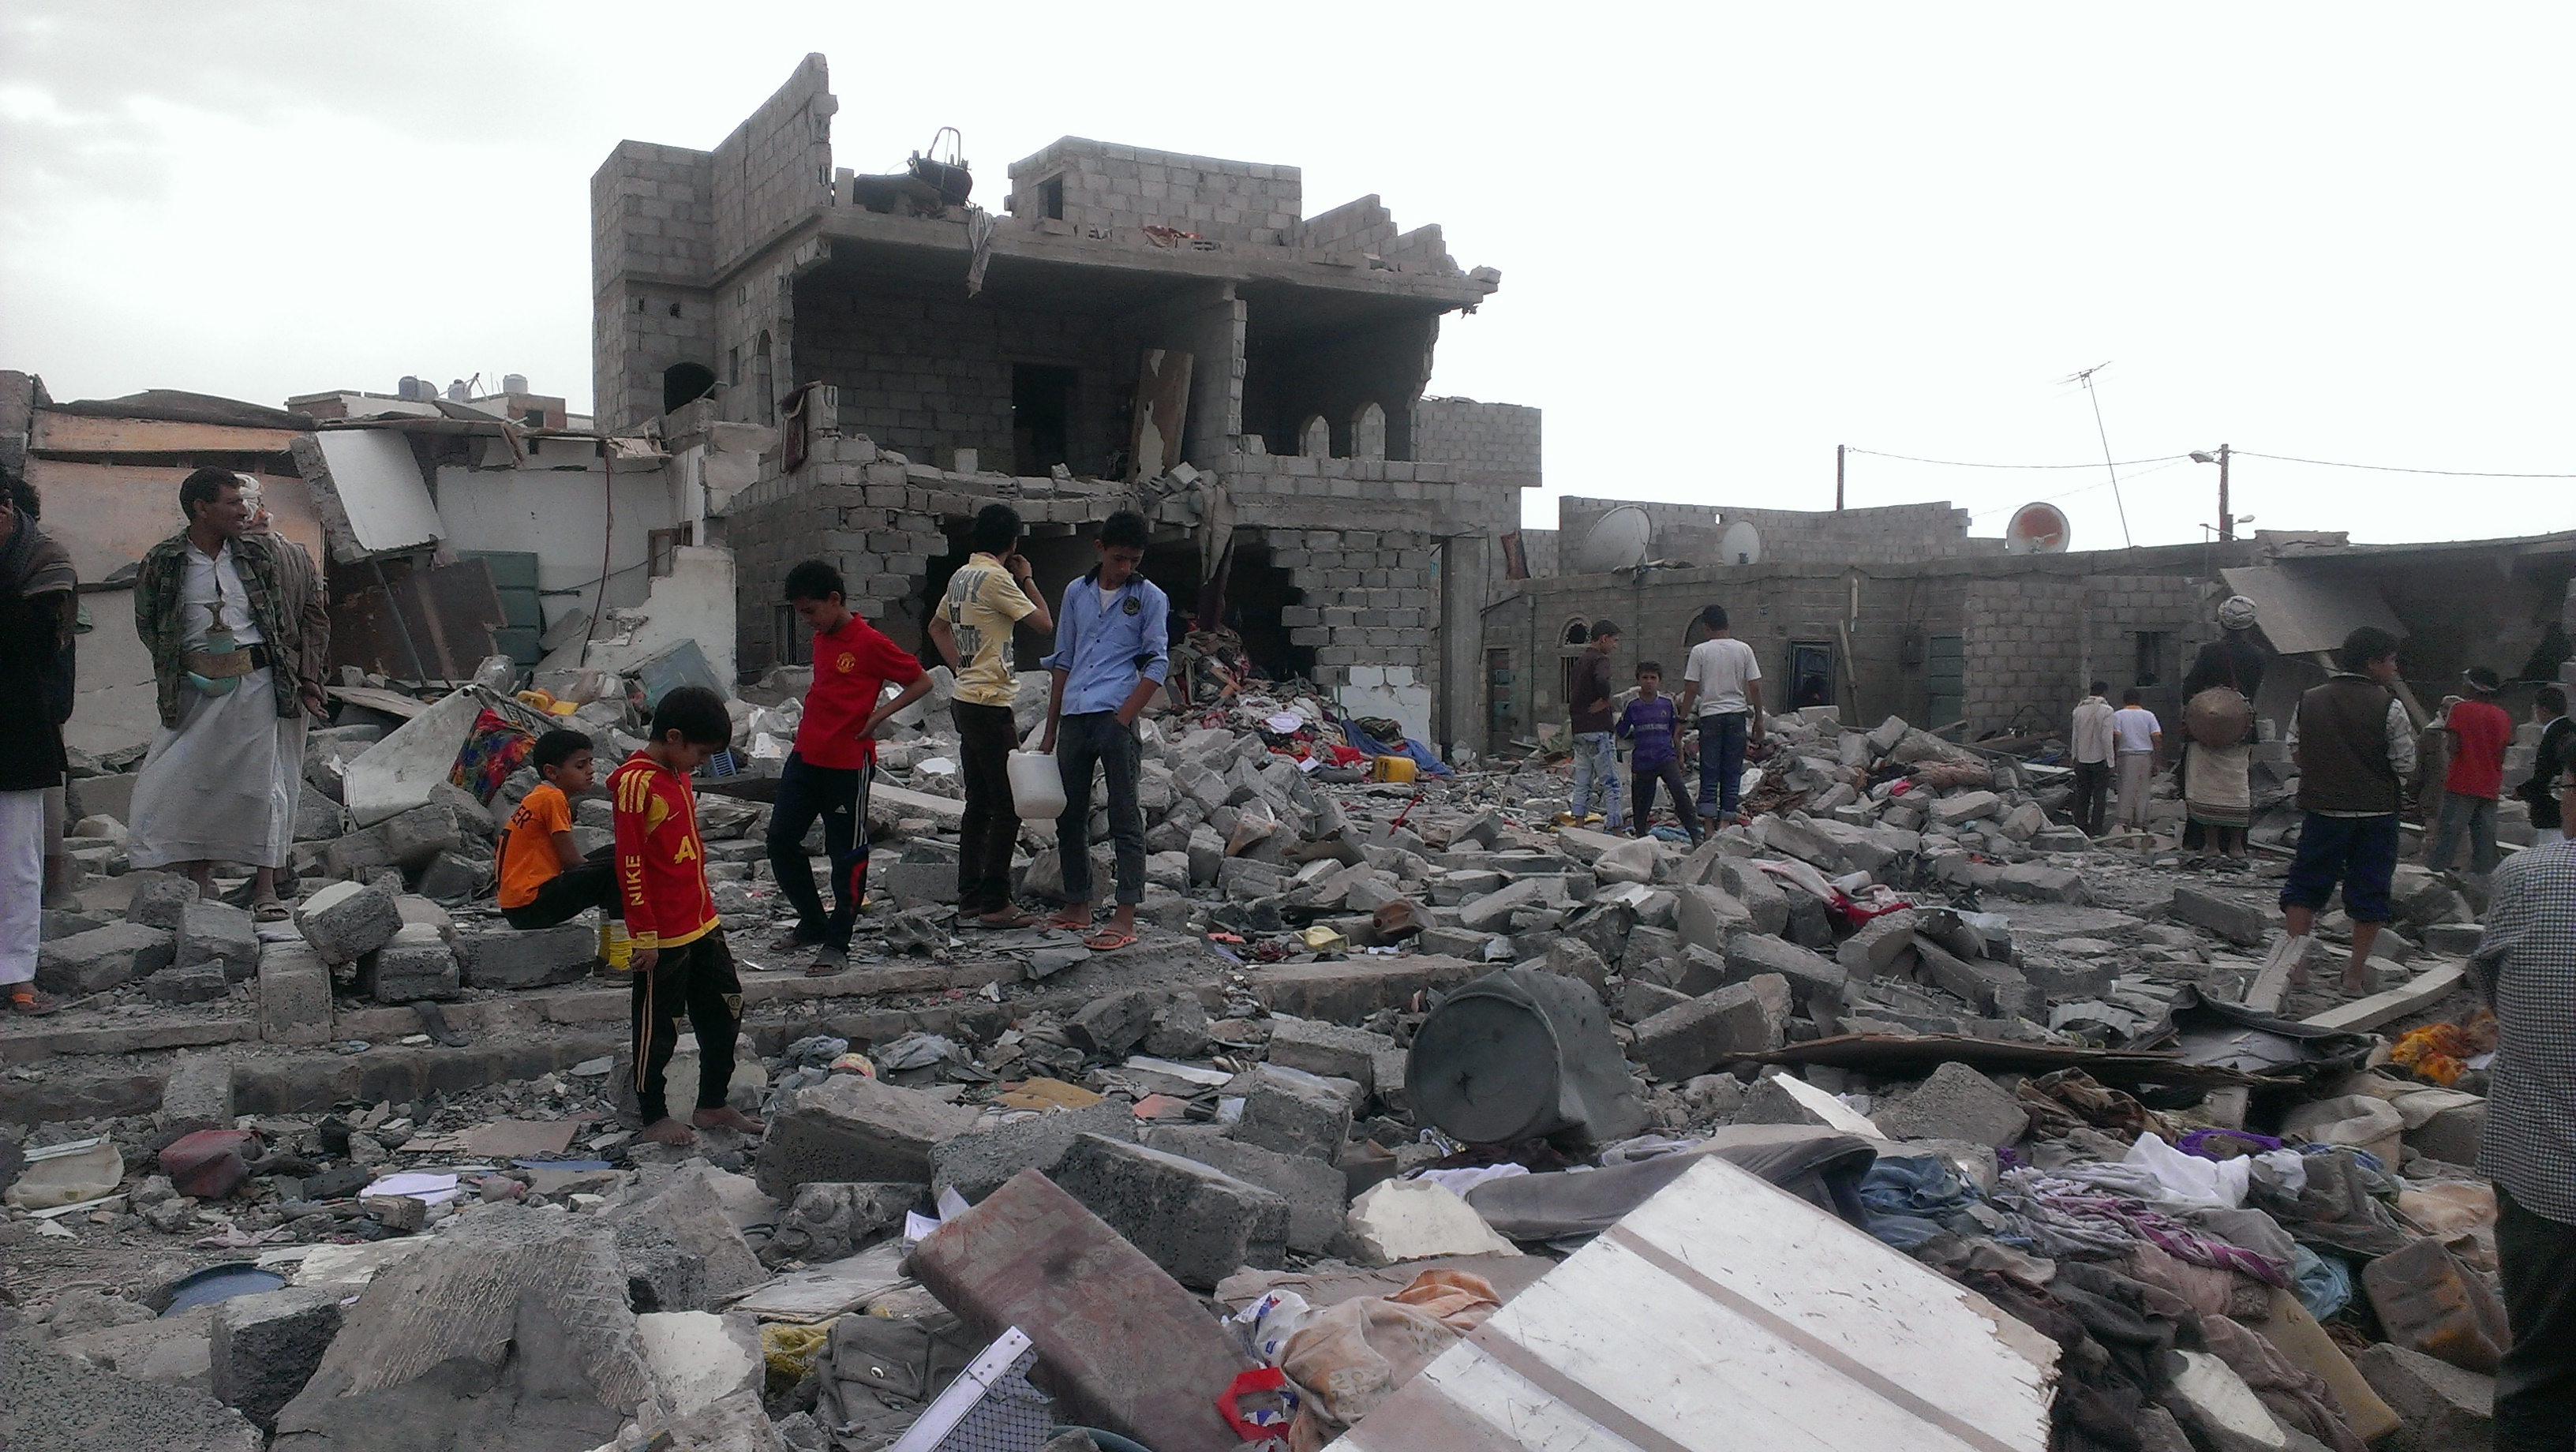 This neighborhood, where more than 100 buildings have been destroyed, has brought attention to the plight of Yemeni blacks, with neighboring communities coming to witness the damage, in Sana'a, Yemen, Oct. 9, 2015. (VOA/A. Mojalli)